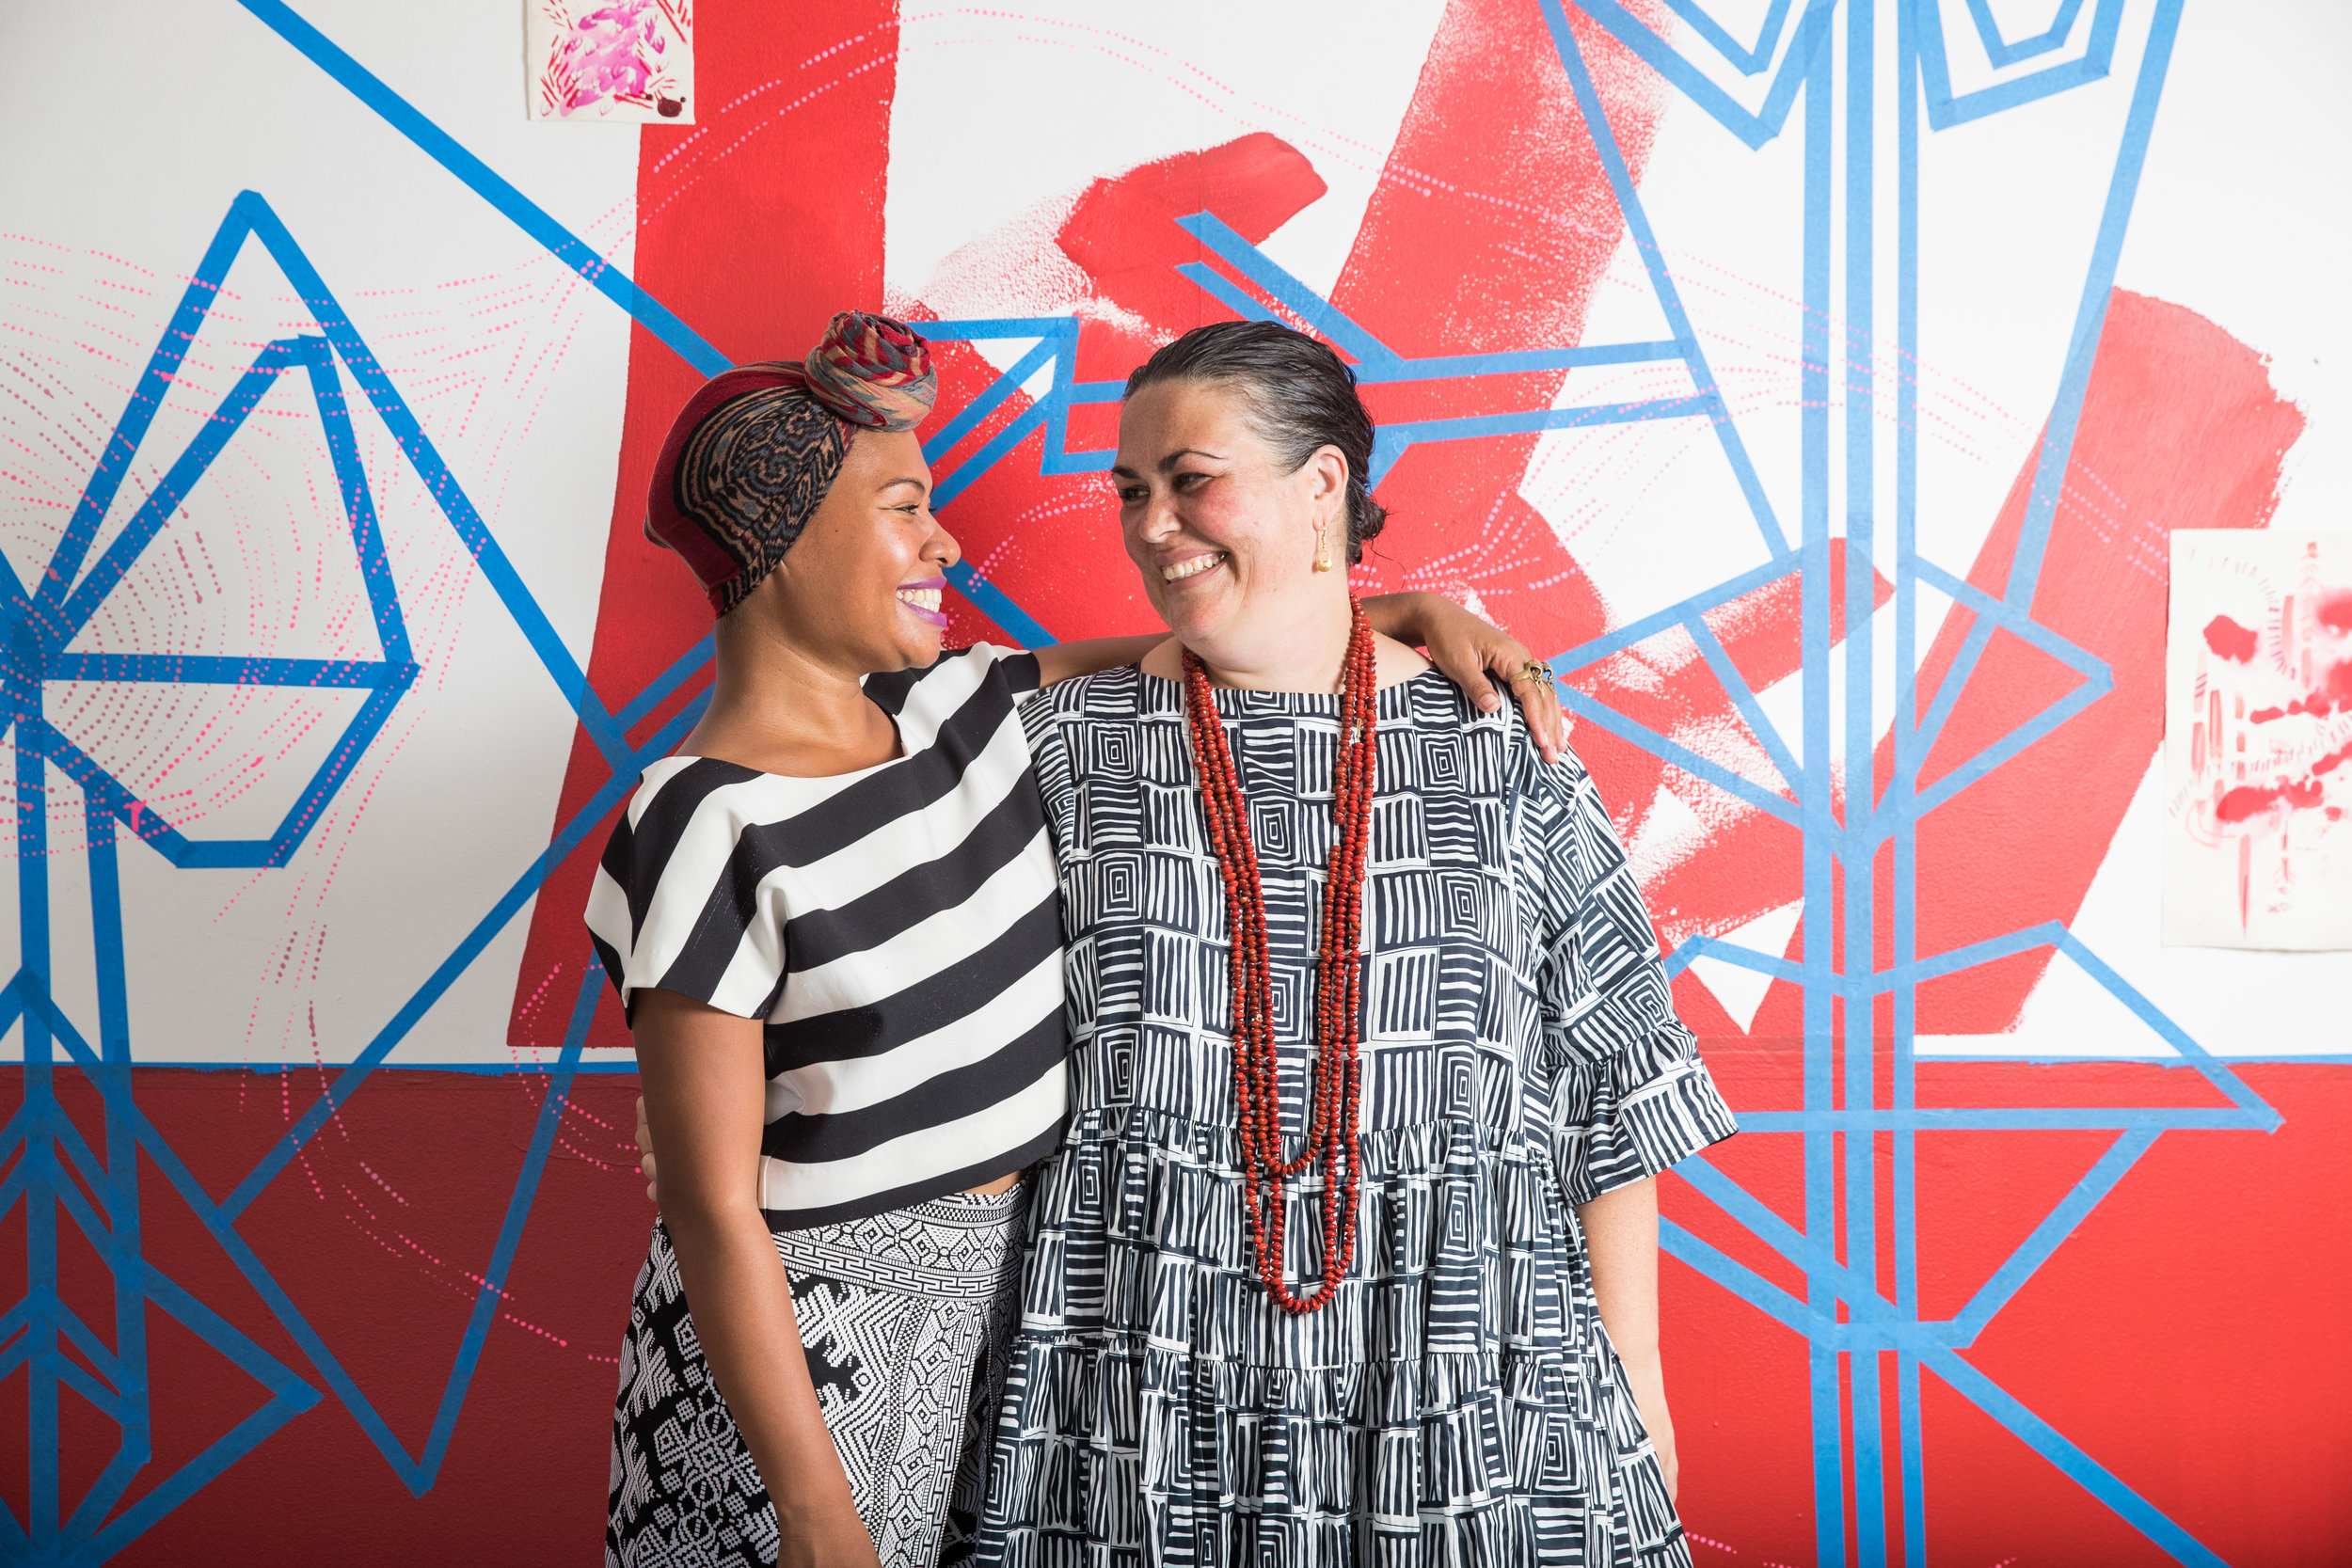 """Lisa Waup reflected on the Residency in Off the Leash magazine - """"It was a very intense time and such a soul revealing topic, yet what unfolded that week was truly magical and a great test within myself, and Weniki also"""""""